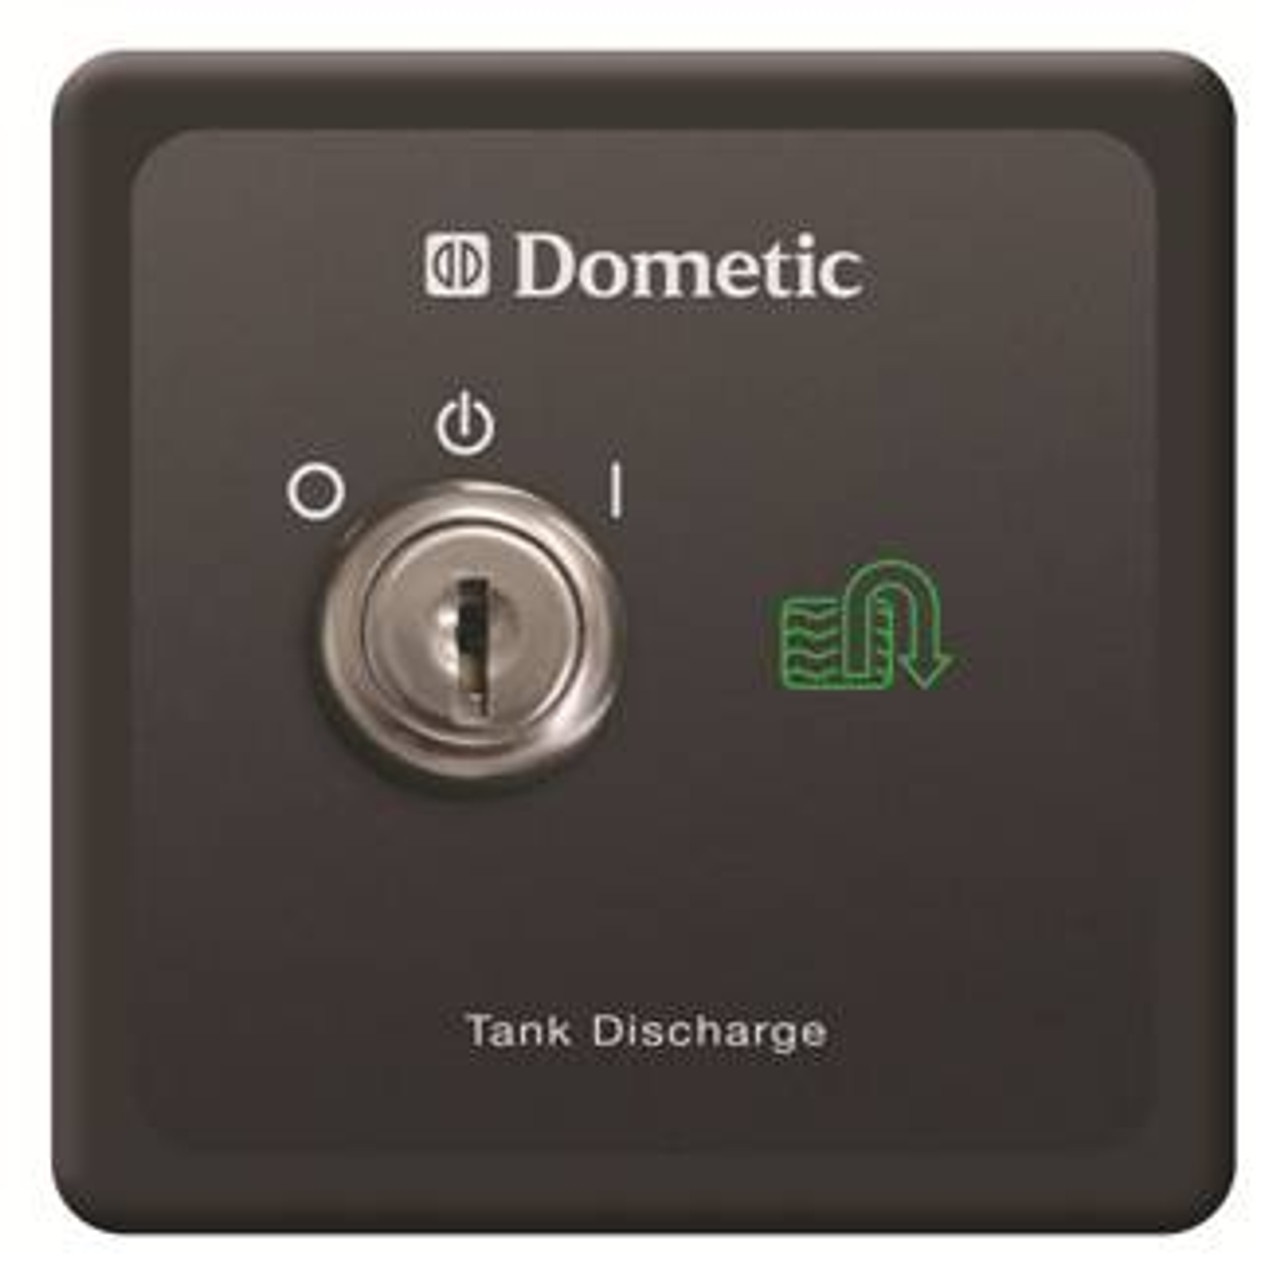 DOMETIC TANK DISCHARGE CONTROLLER 814301 12 VOLT